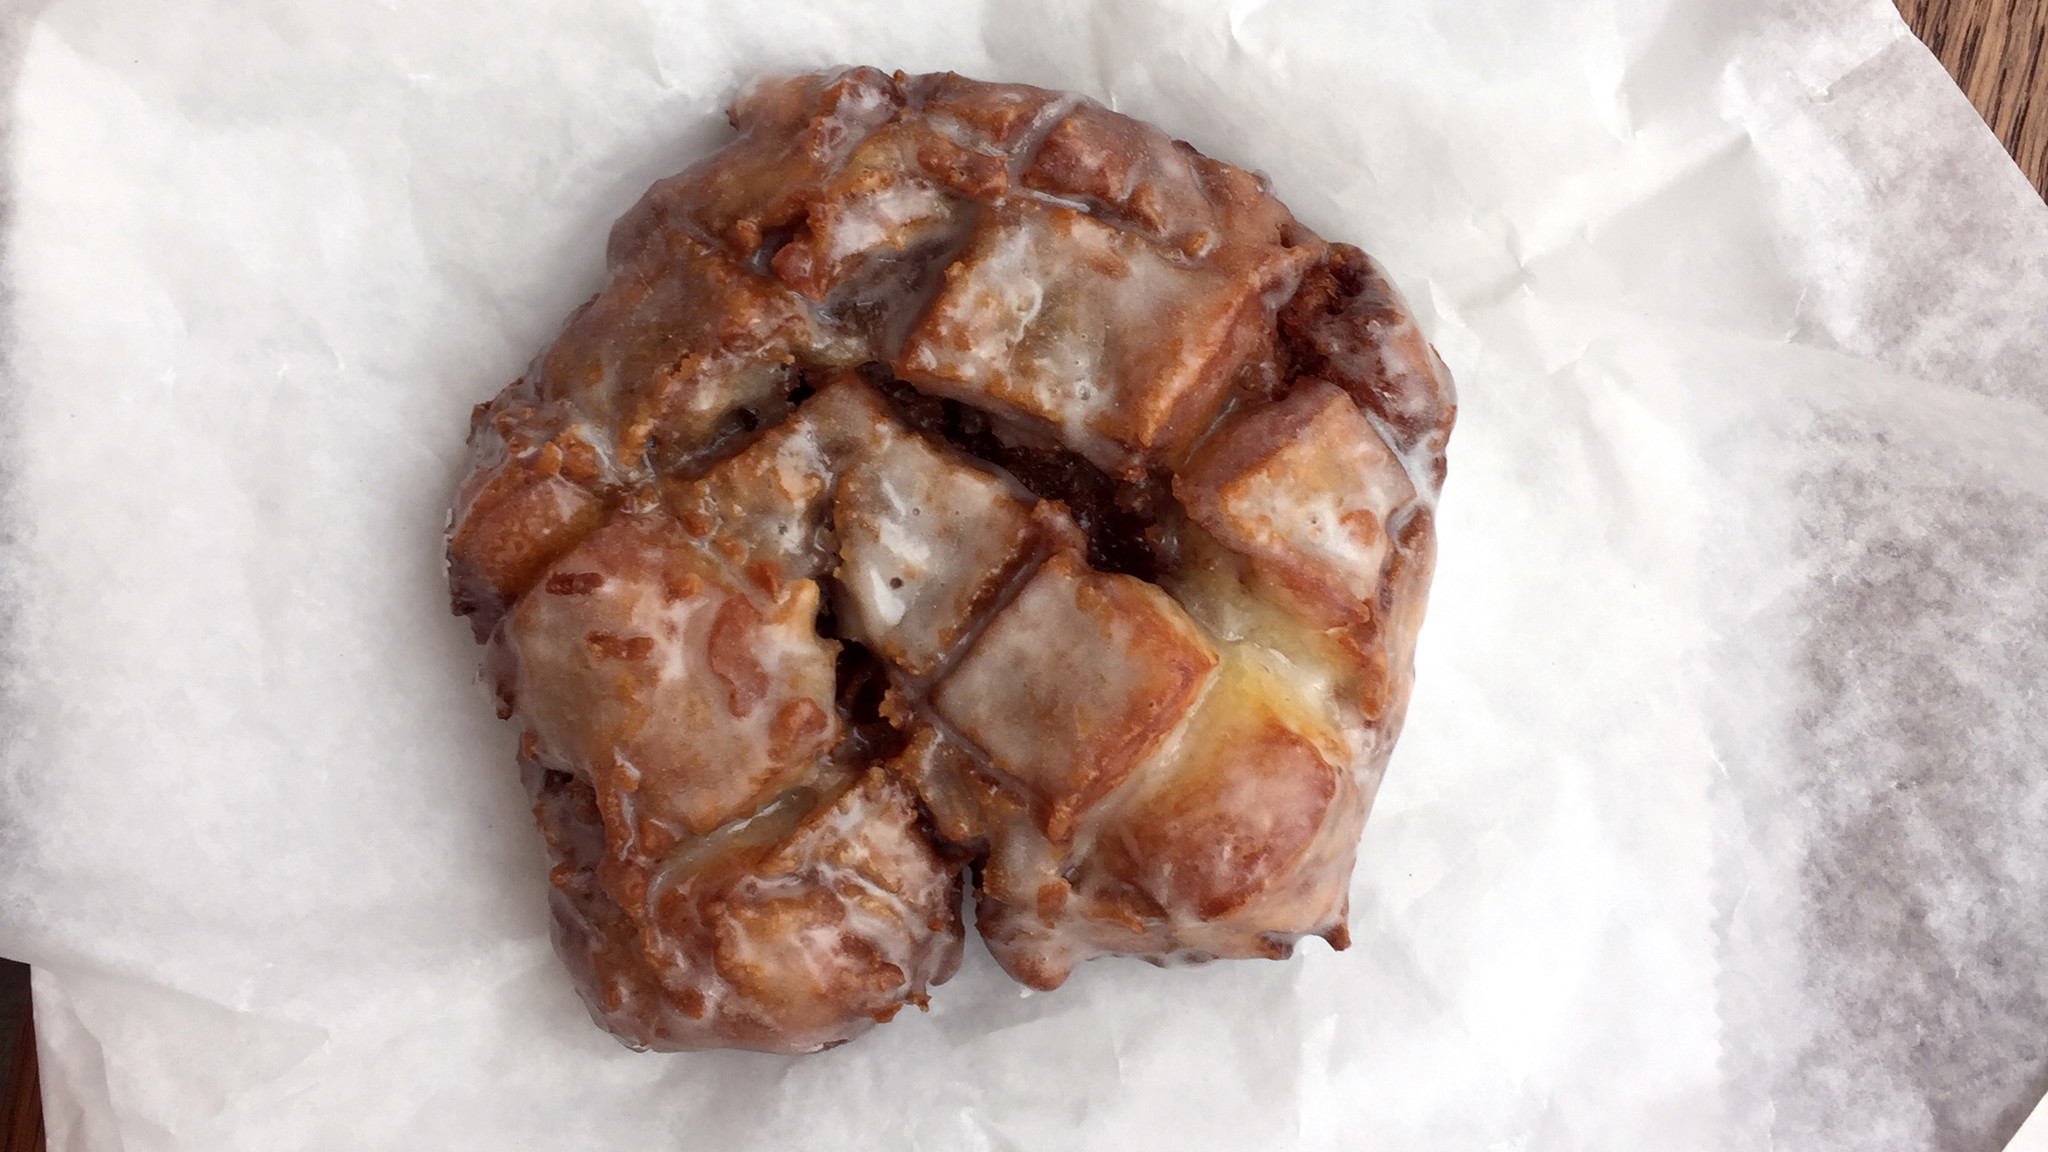 Hard apple cider fritter from Blue Star Donuts.